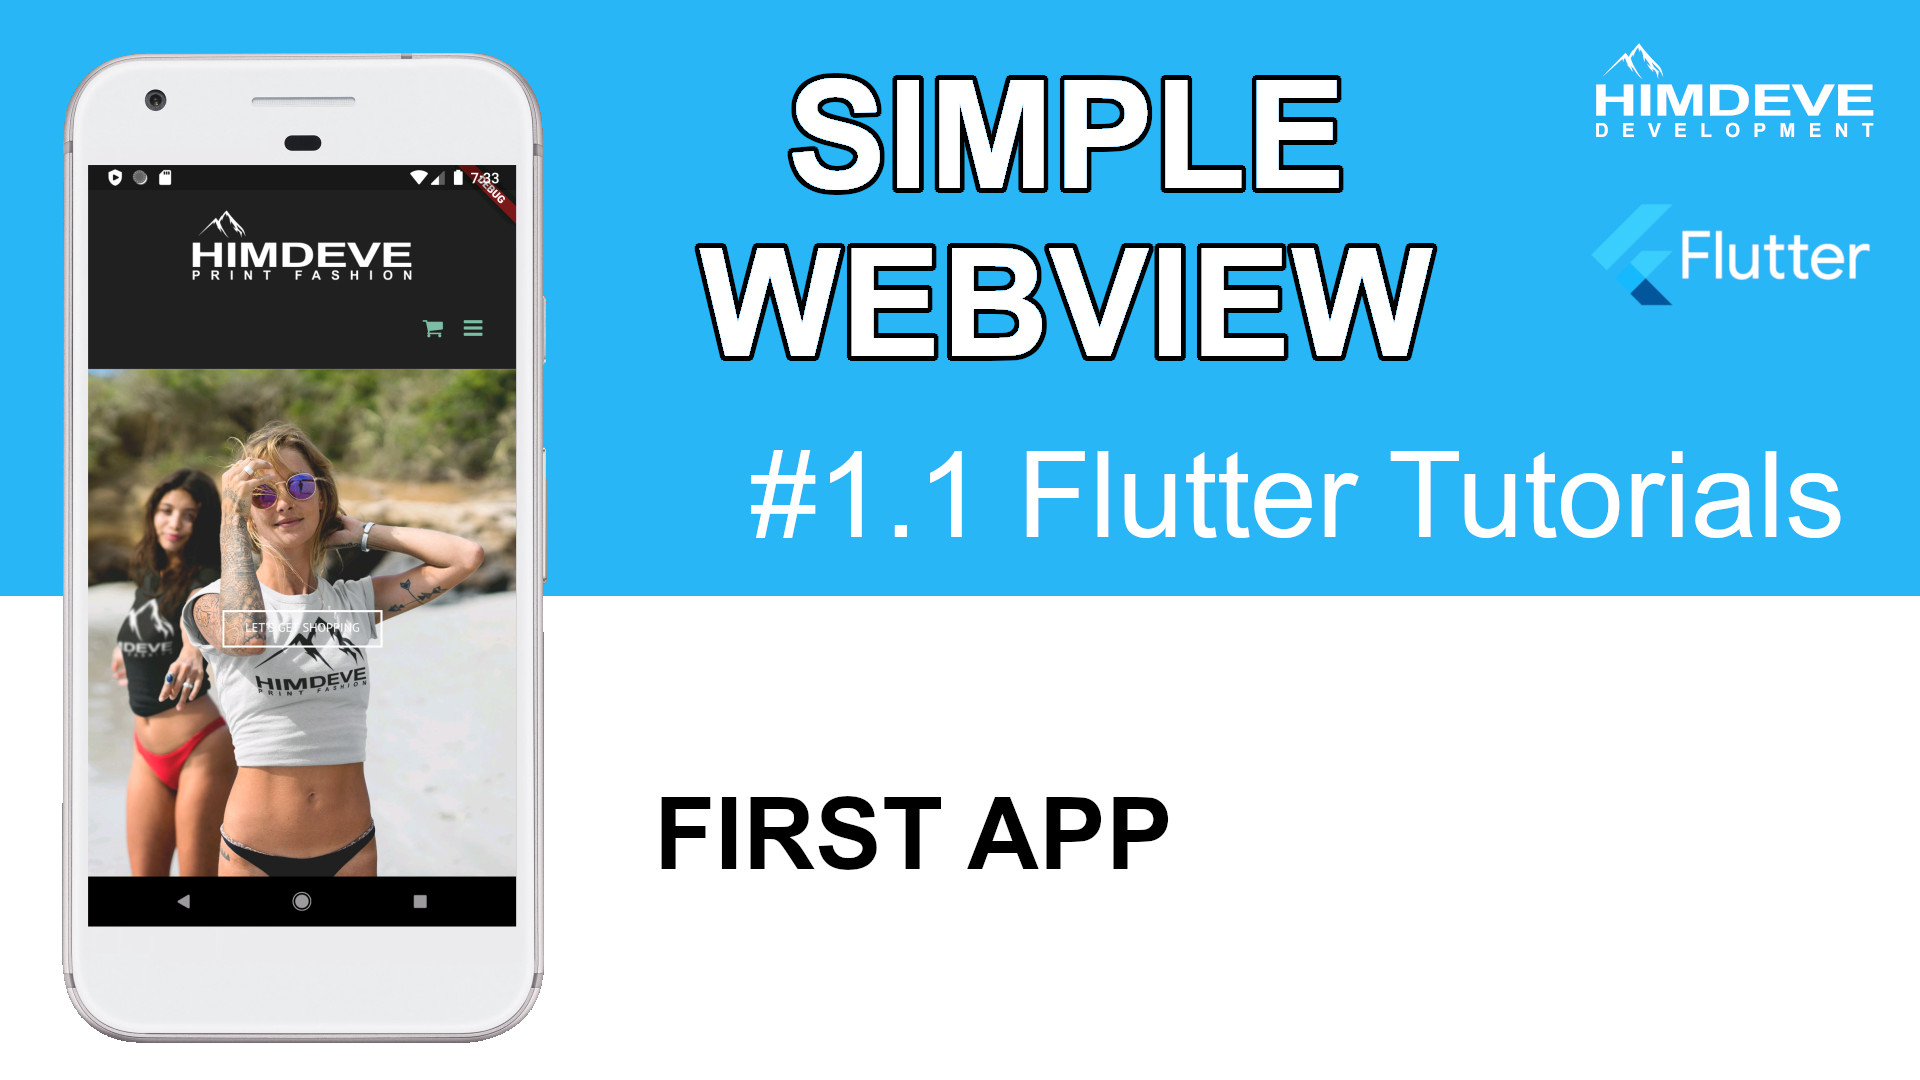 #1_1 Simple Webview Flutter Tutorials